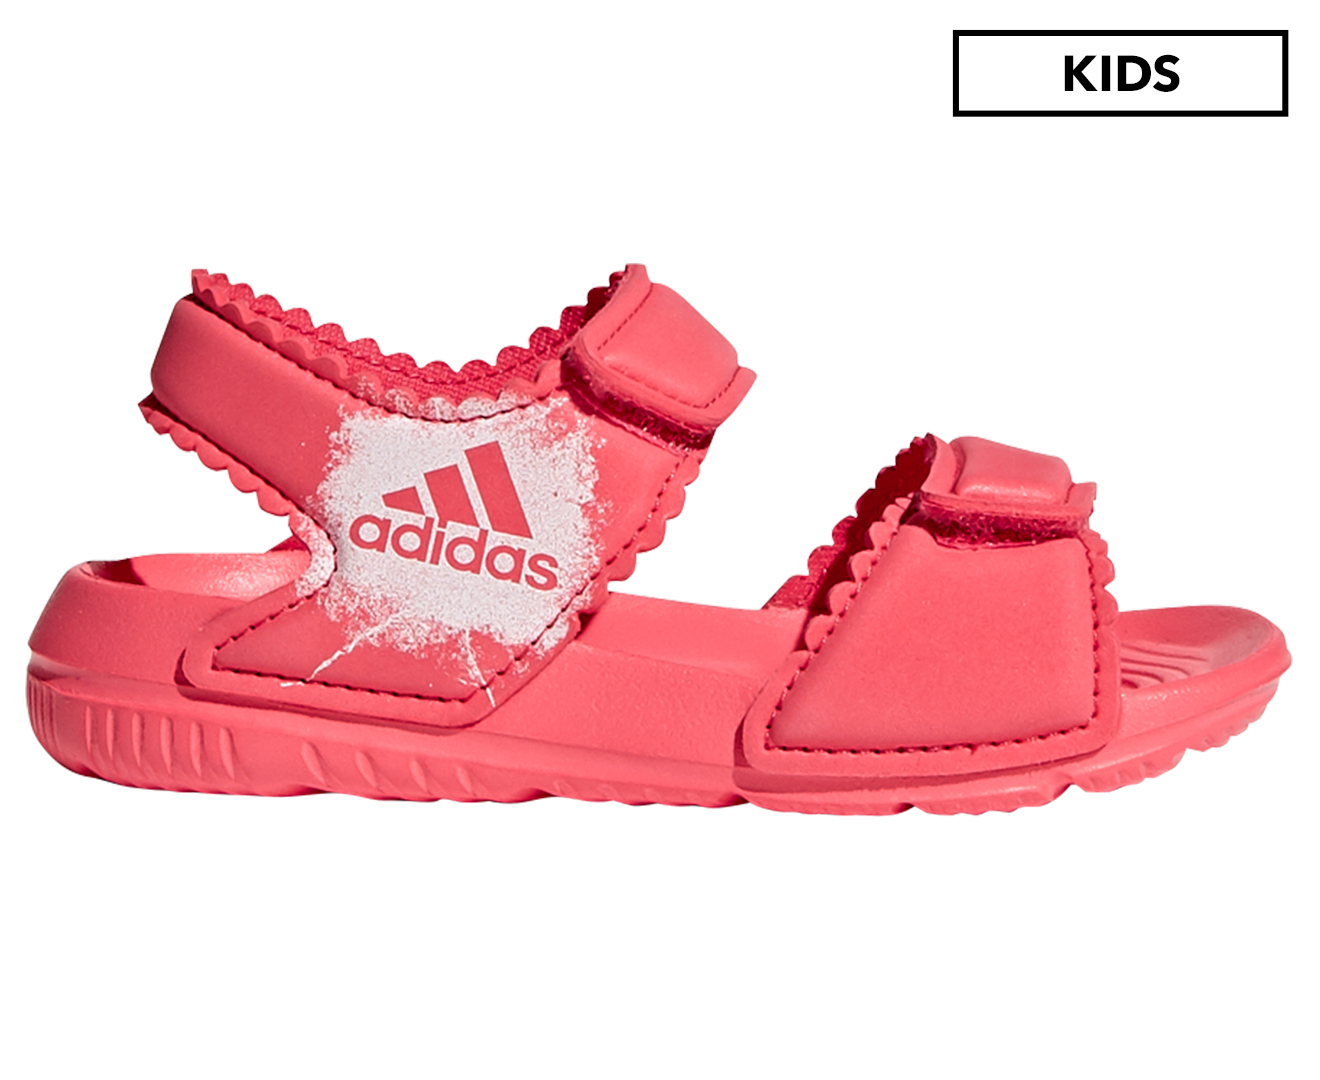 Toddler size 8 shoes Adidas toddler girls pink and blue